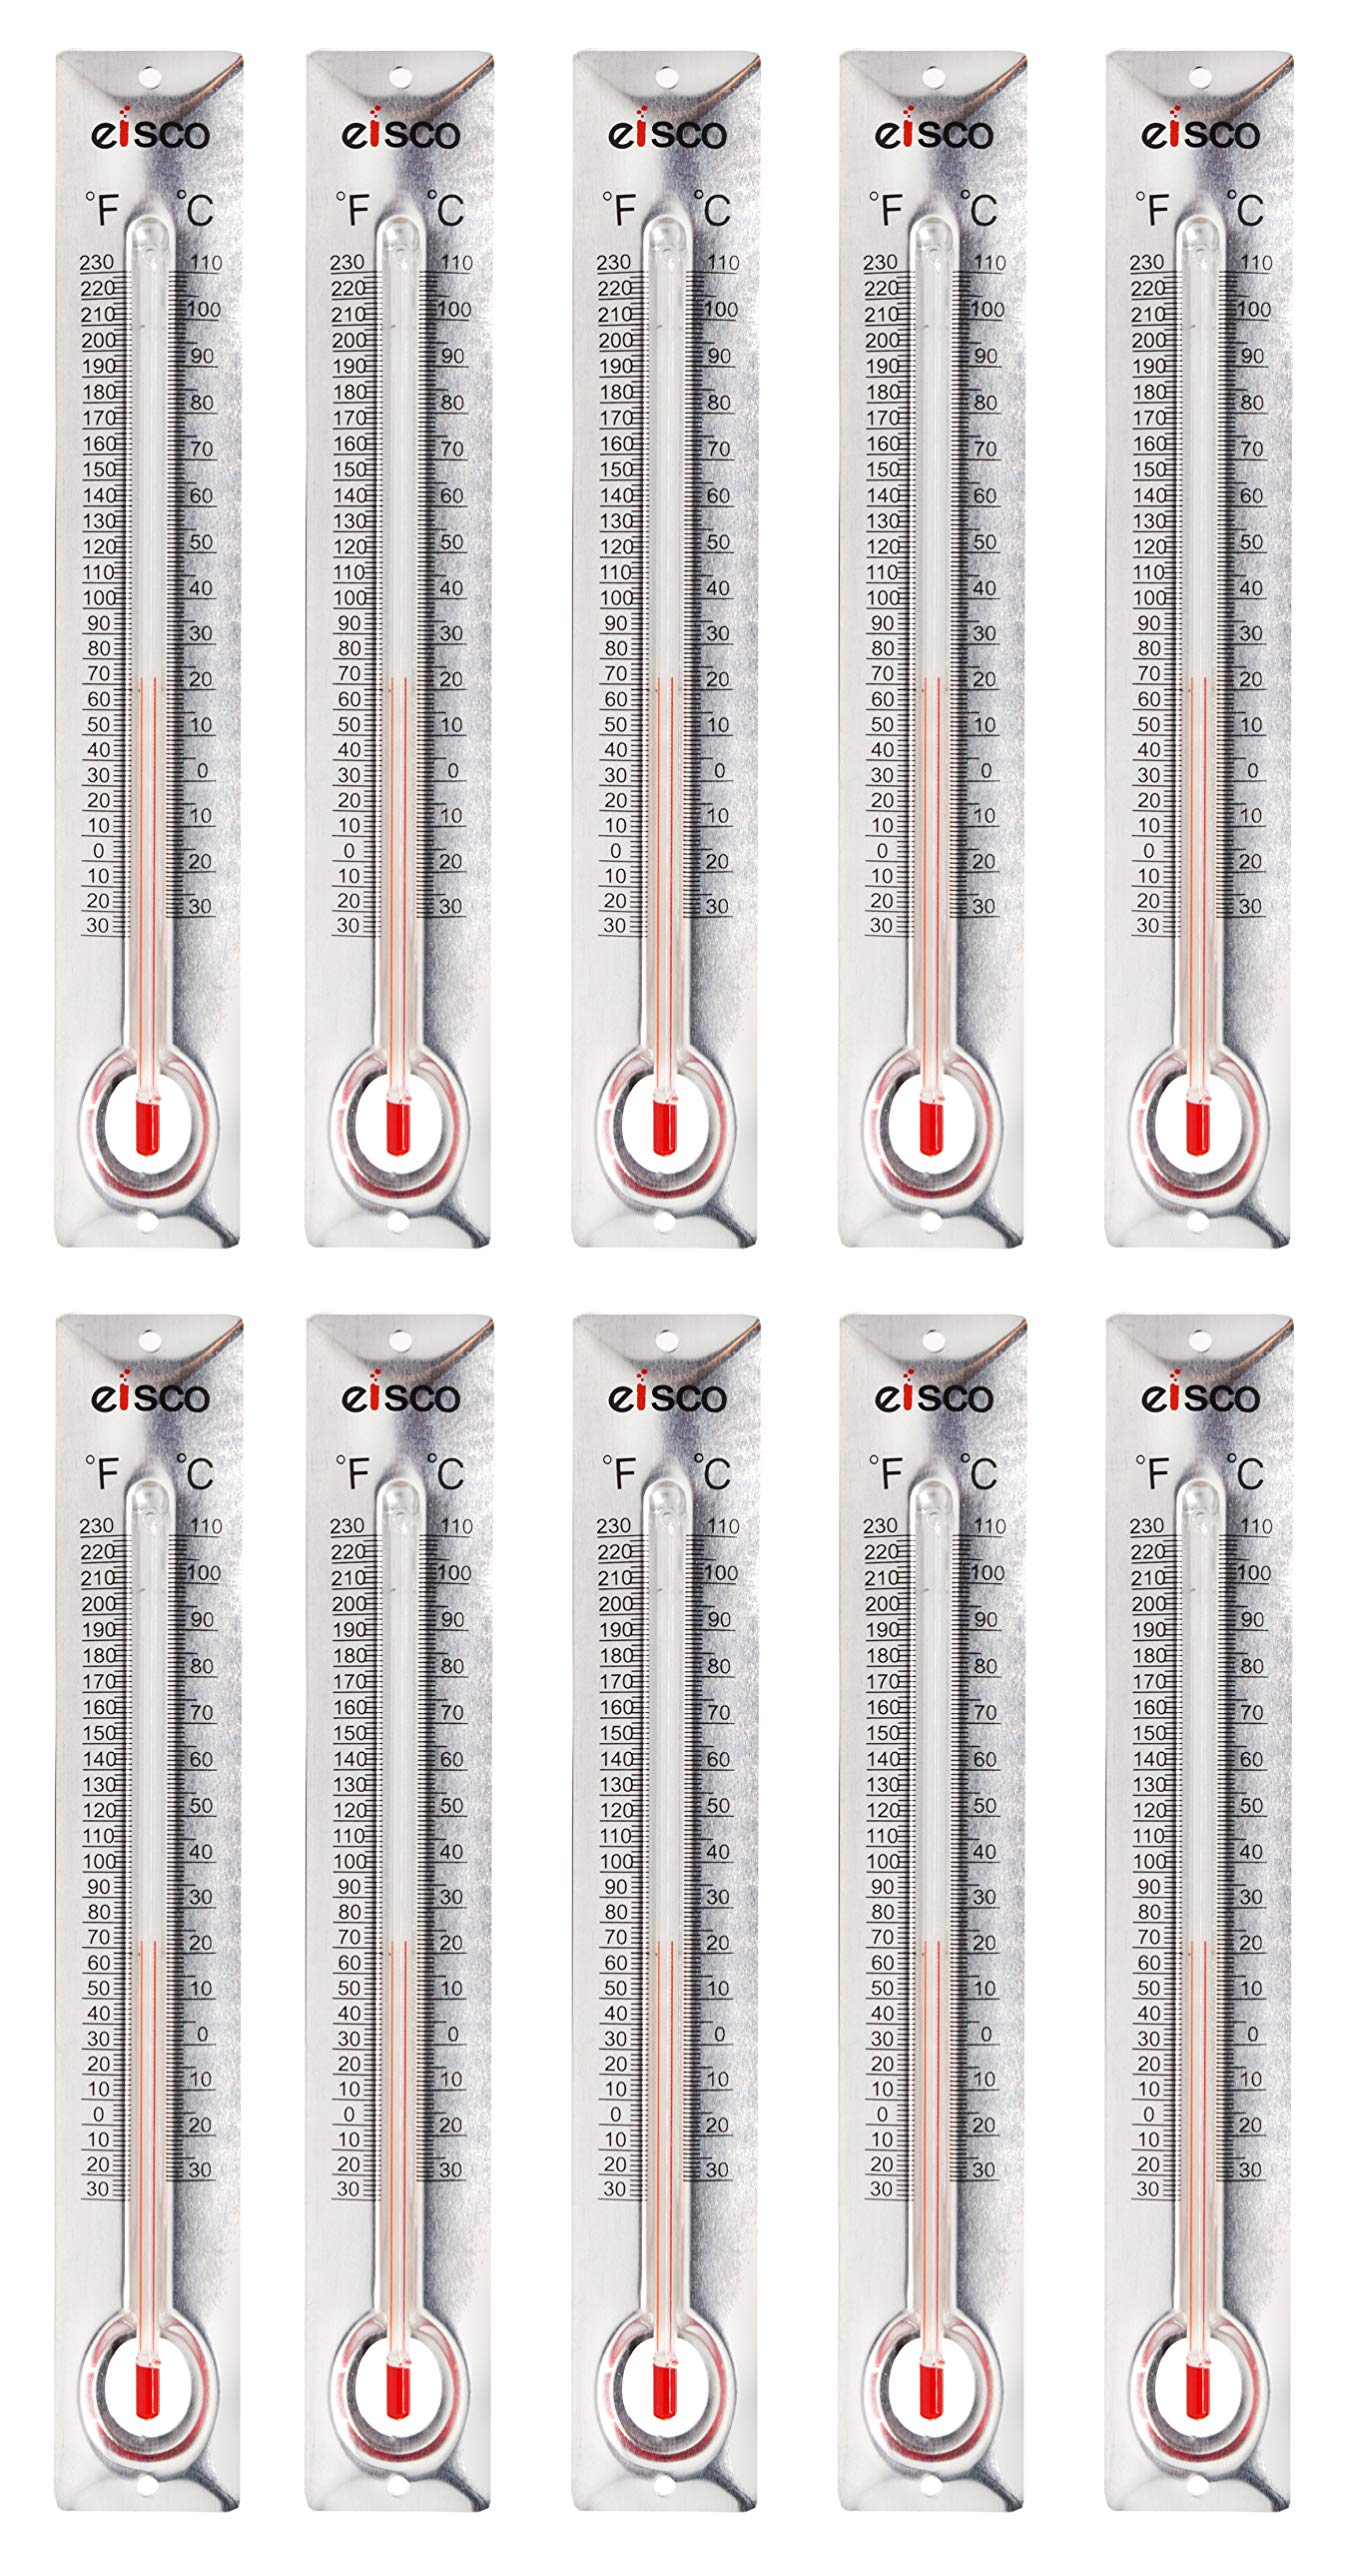 10 Pack - Aluminum Thermometers, -30 to 110°C / 30 to 230°F, Measurement in Celsius & Fahrenheit - Aluminum Backing, Glass - Spirit Filled - 6.5'' Long, 1'' Wide - Eisco Labs by EISCO (Image #1)